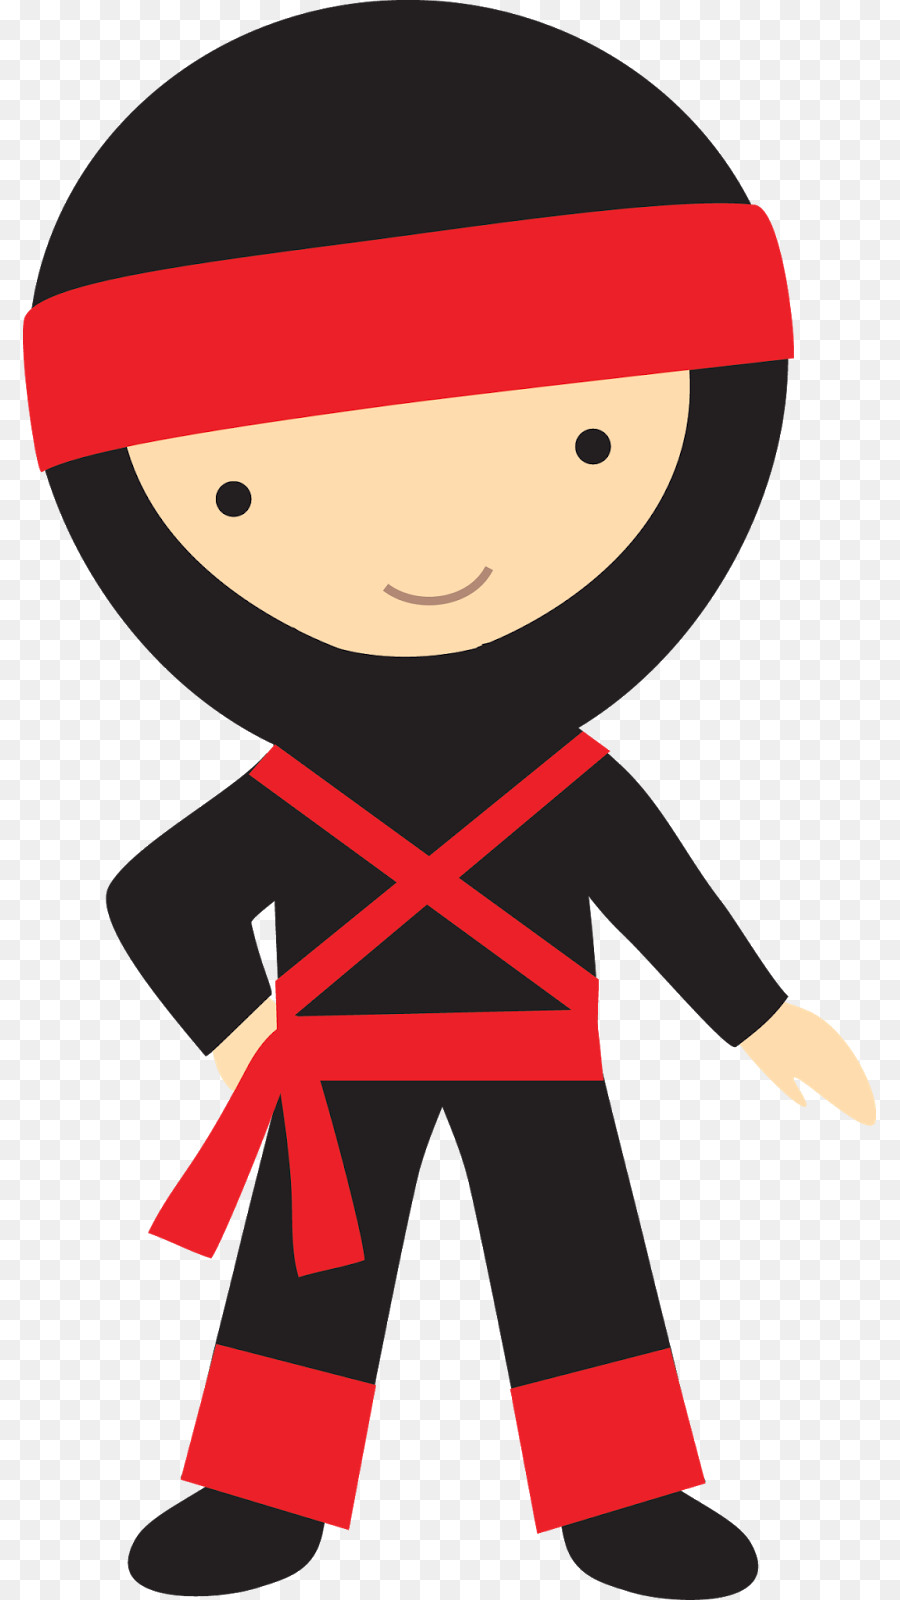 Ninja Cartoontransparent png image & clipart free download.